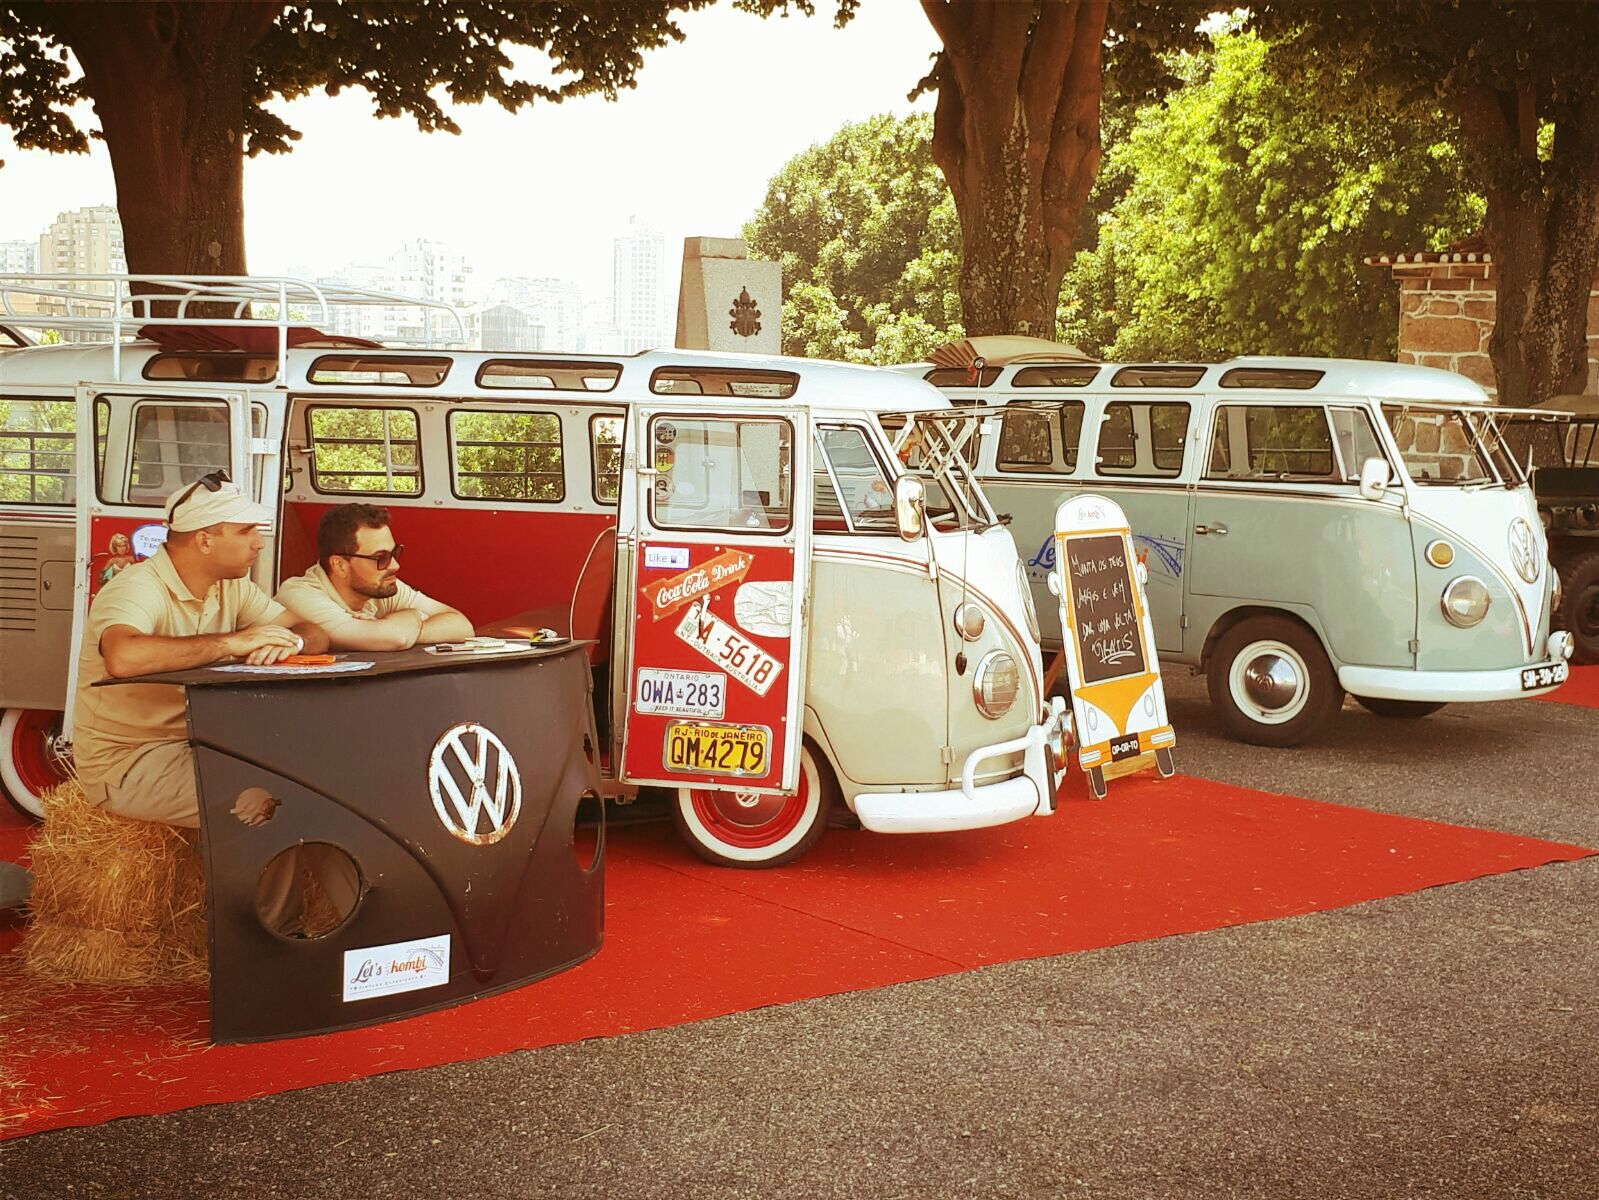 Let's Kombi events